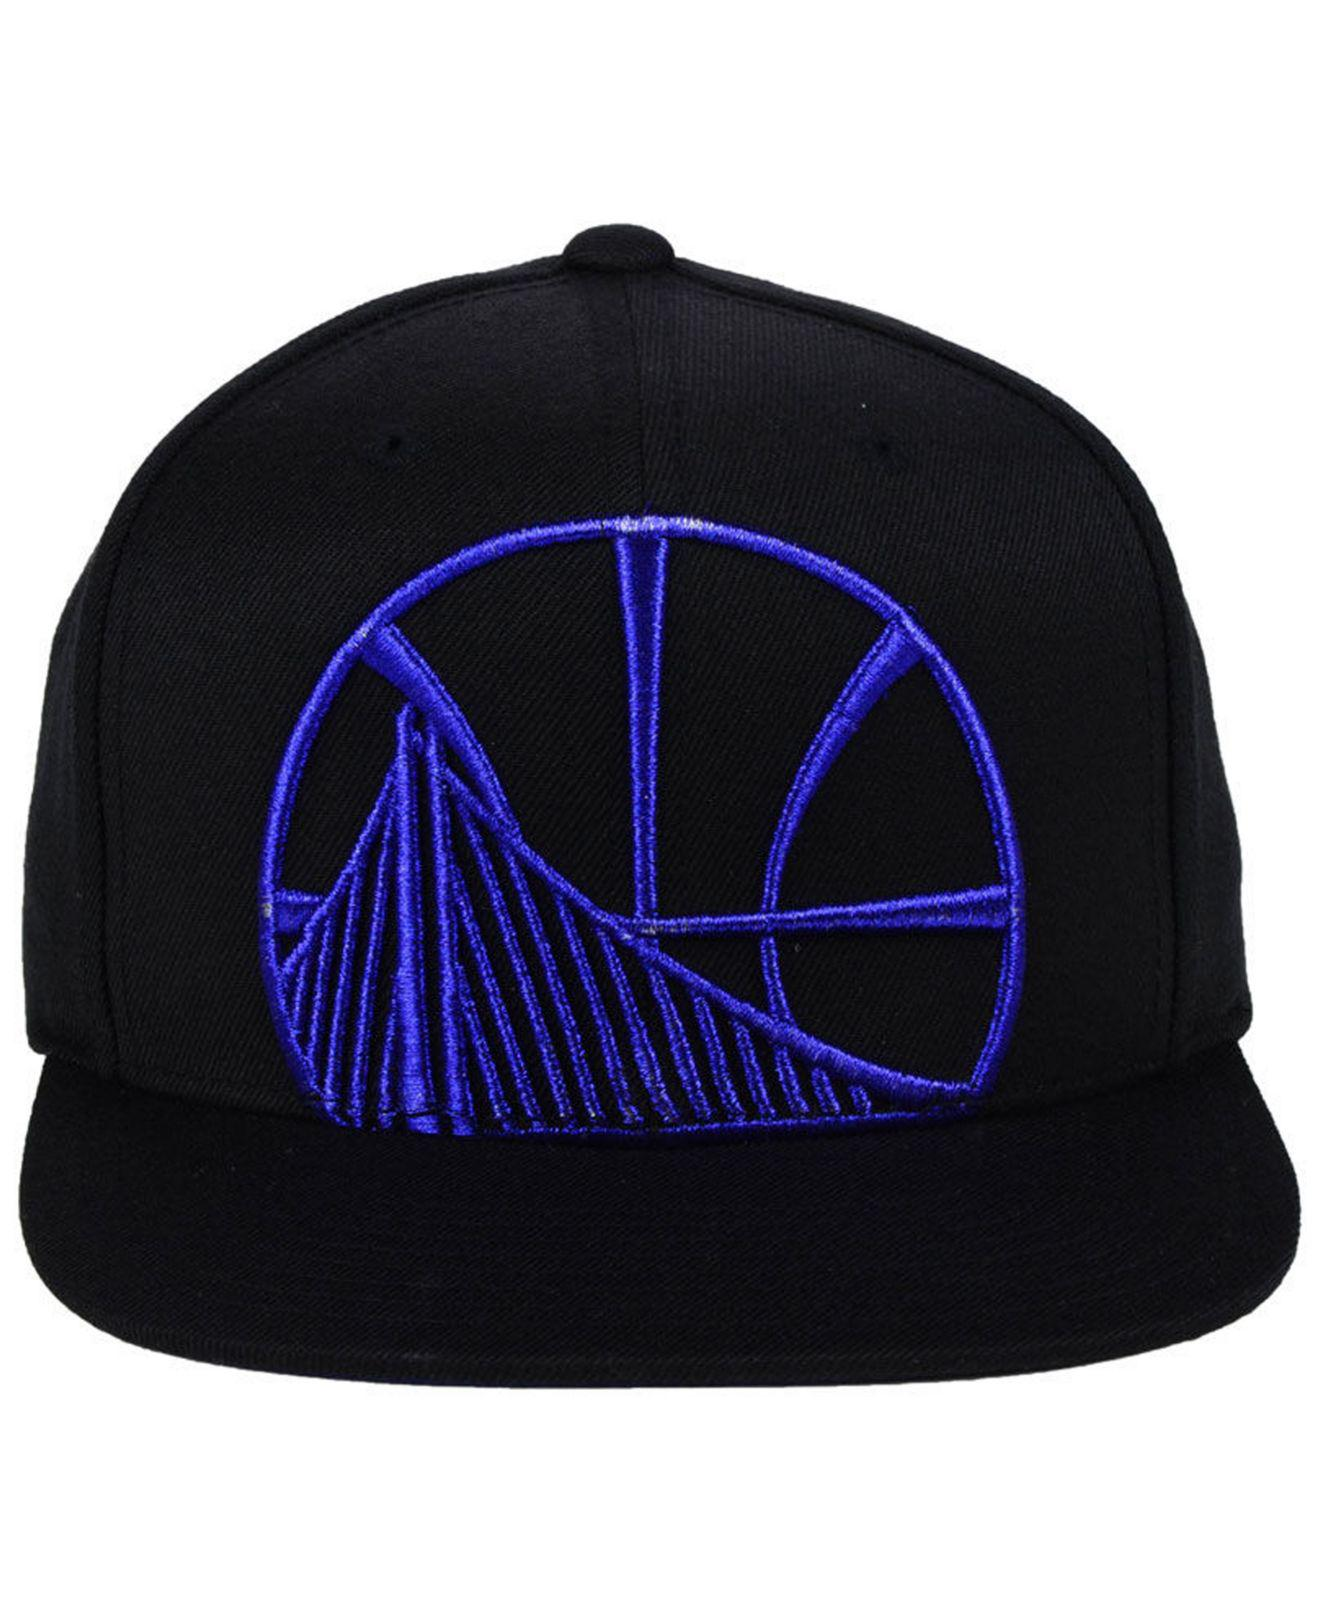 dc702c29c21 ... greece lyst mitchell ness golden state warriors metallic cropped snapback  cap in black for men 84d4d